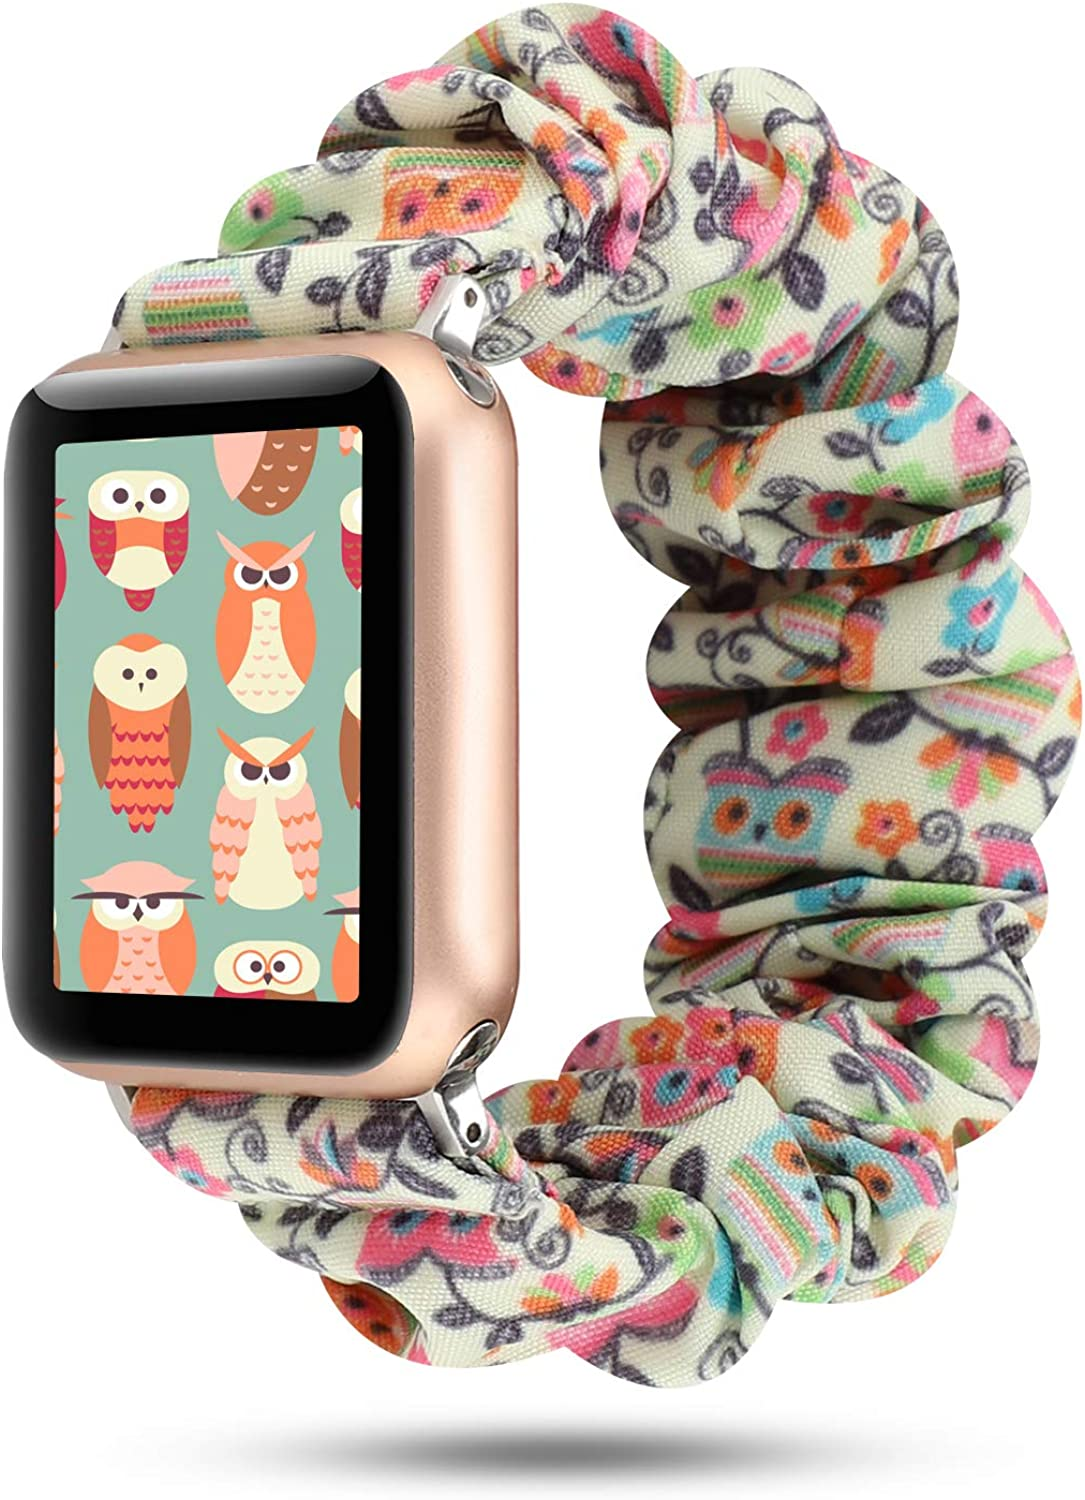 WONMILLE Scrunchie Elastic Wrist Bracelet for Apple Watch Band 38mm/40mm, Fancy Elastic Hair Wristbands Replacement for iWatch Series 5/4/3/2/1 Women Girls